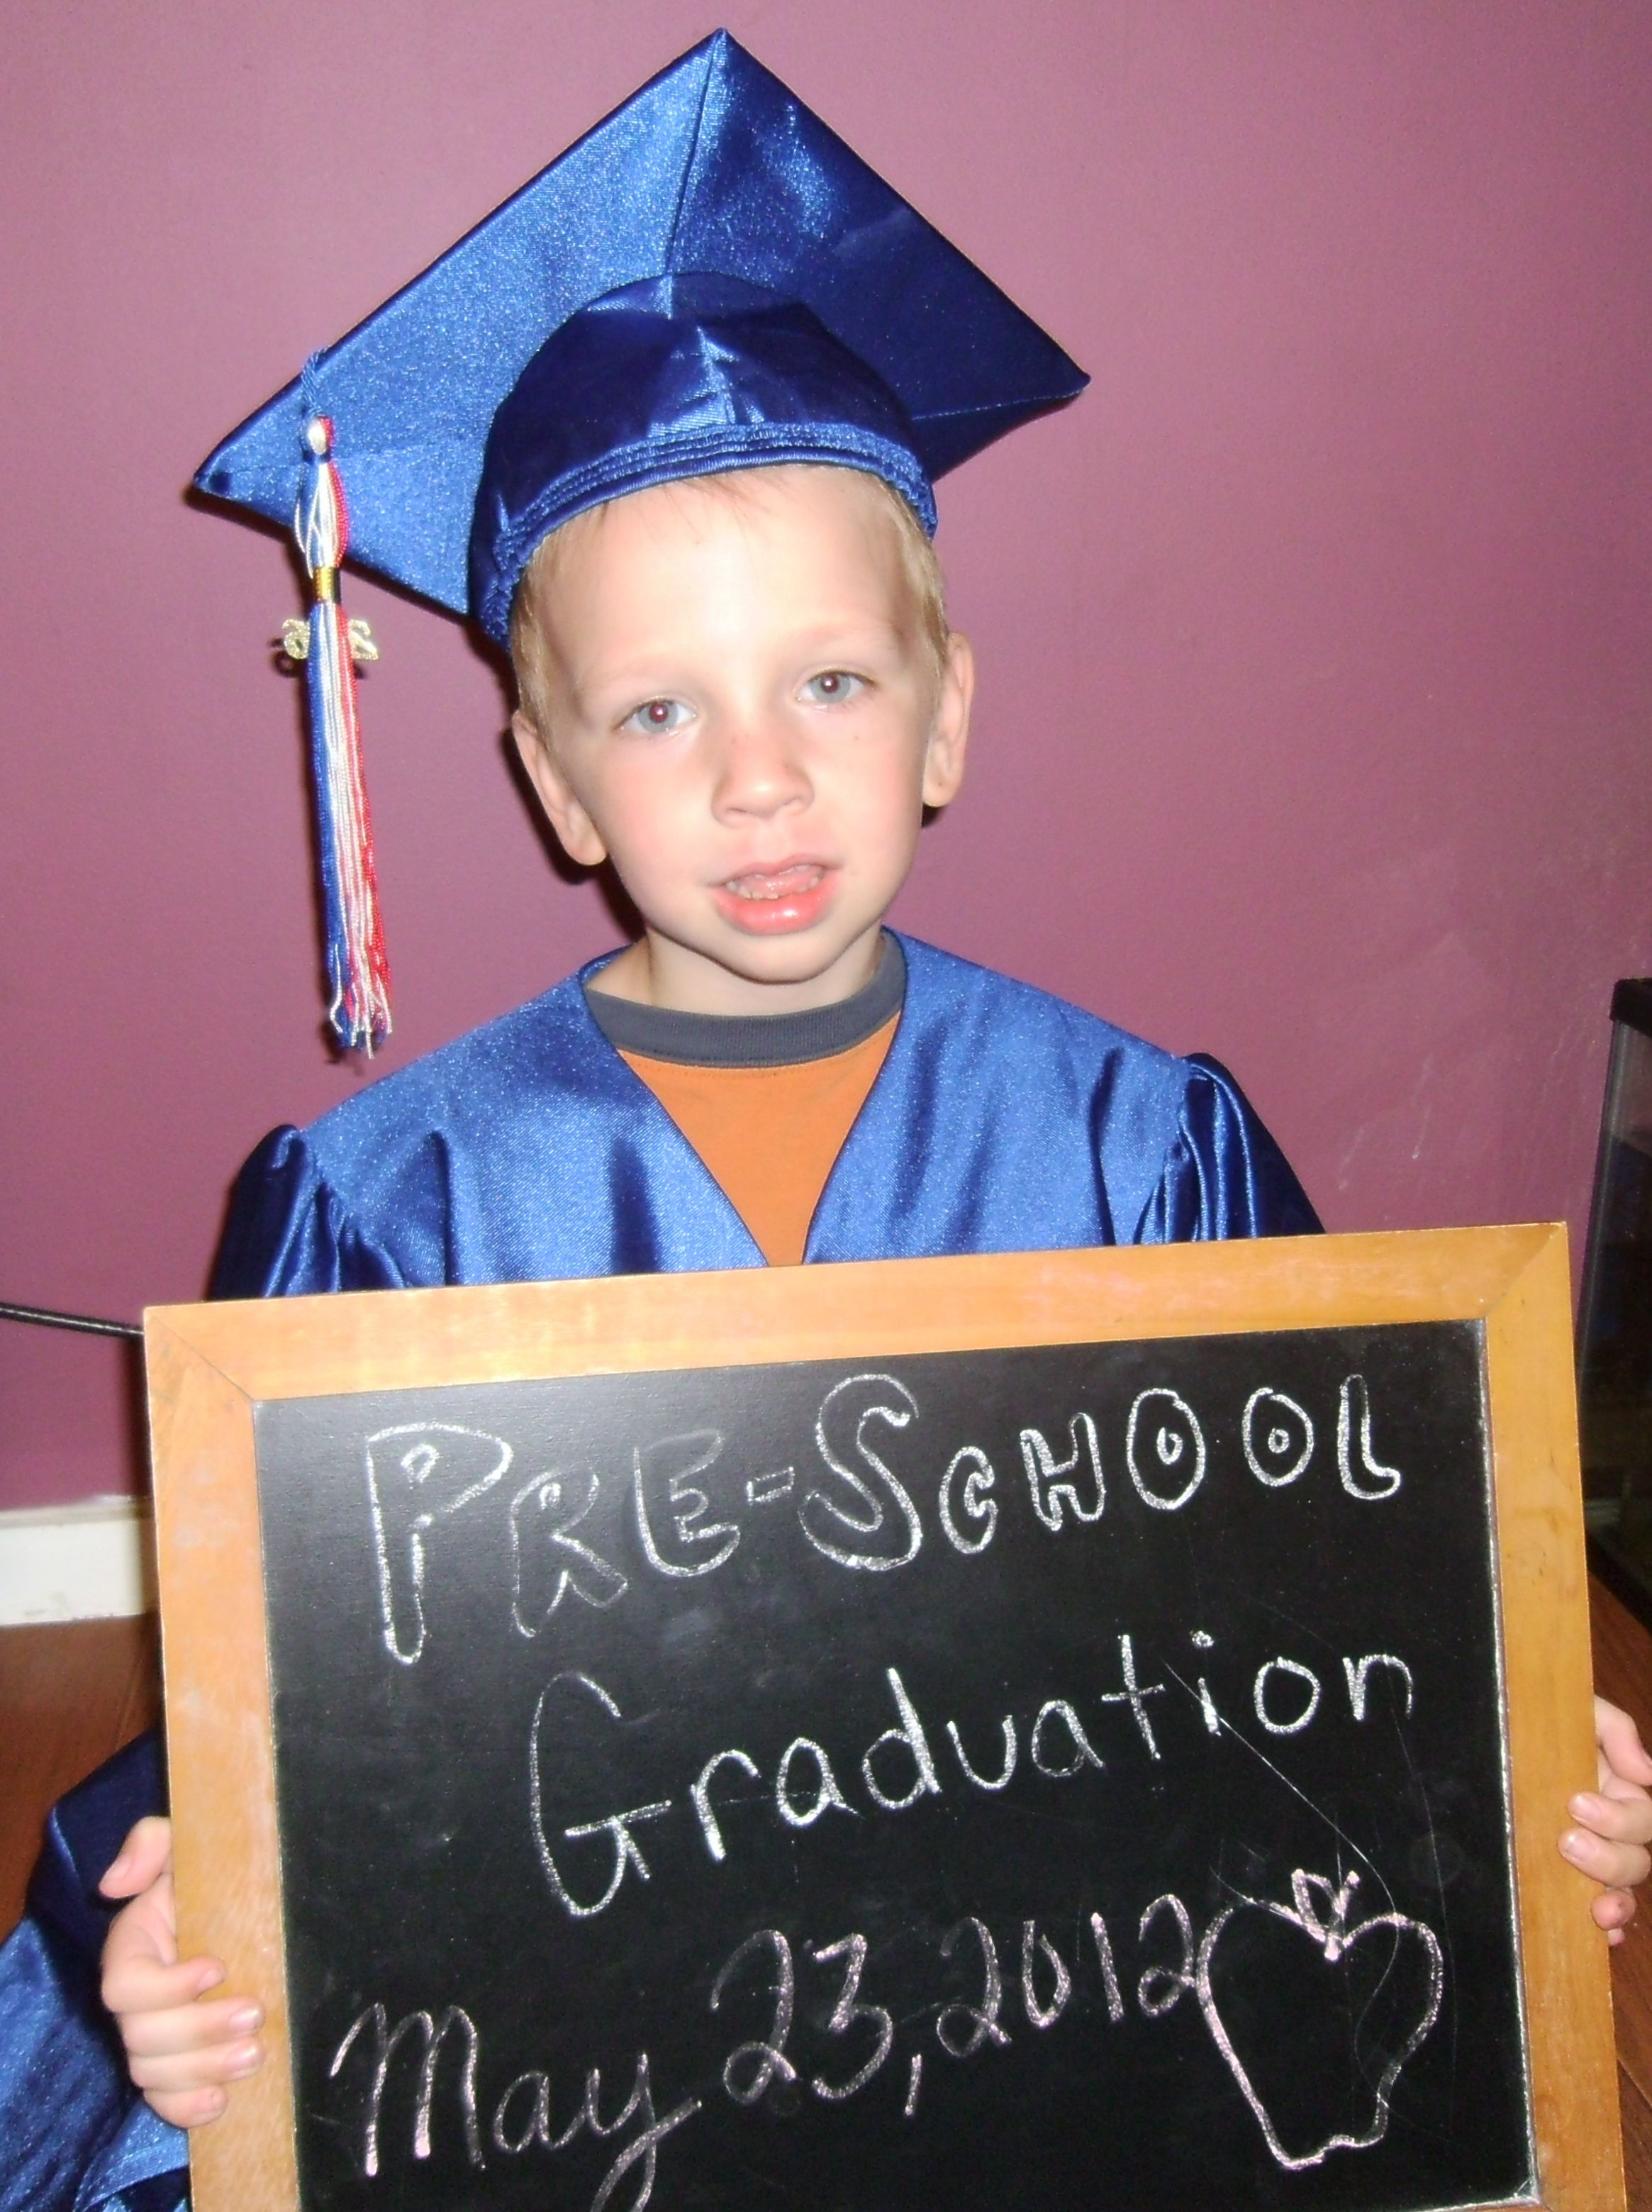 His Preschool Graduation Picture In My Cap And Gown